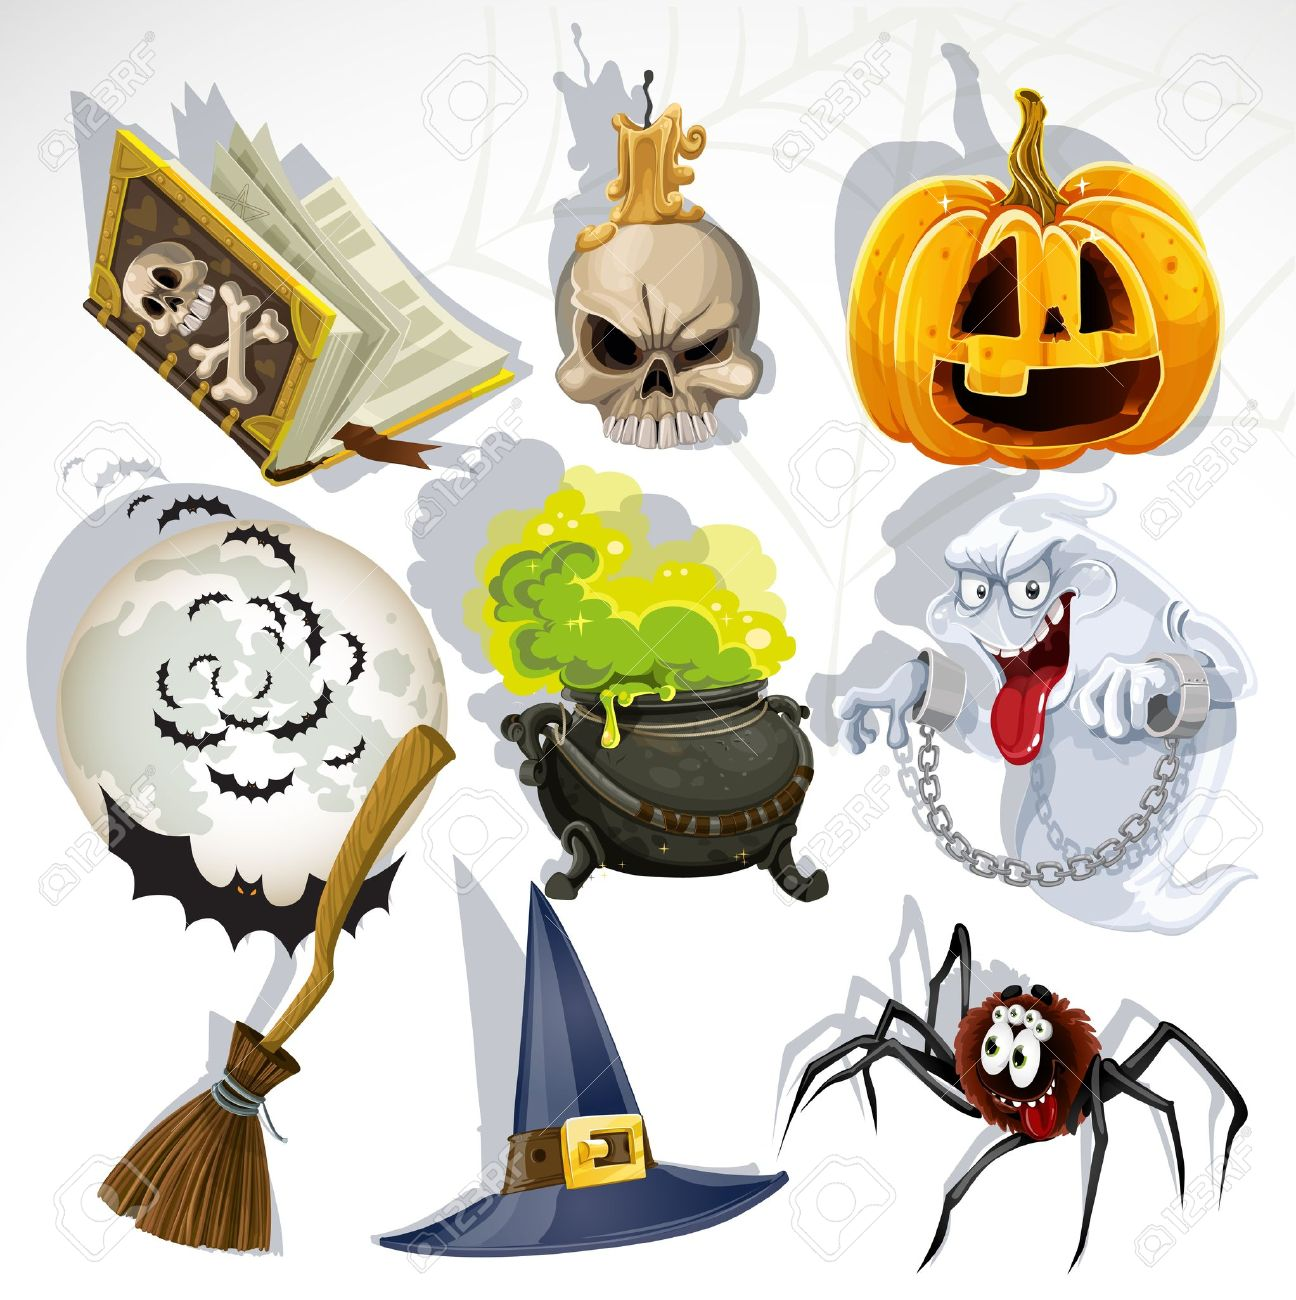 Collection of halloween related objects and creatures Stock Vector - 15512480